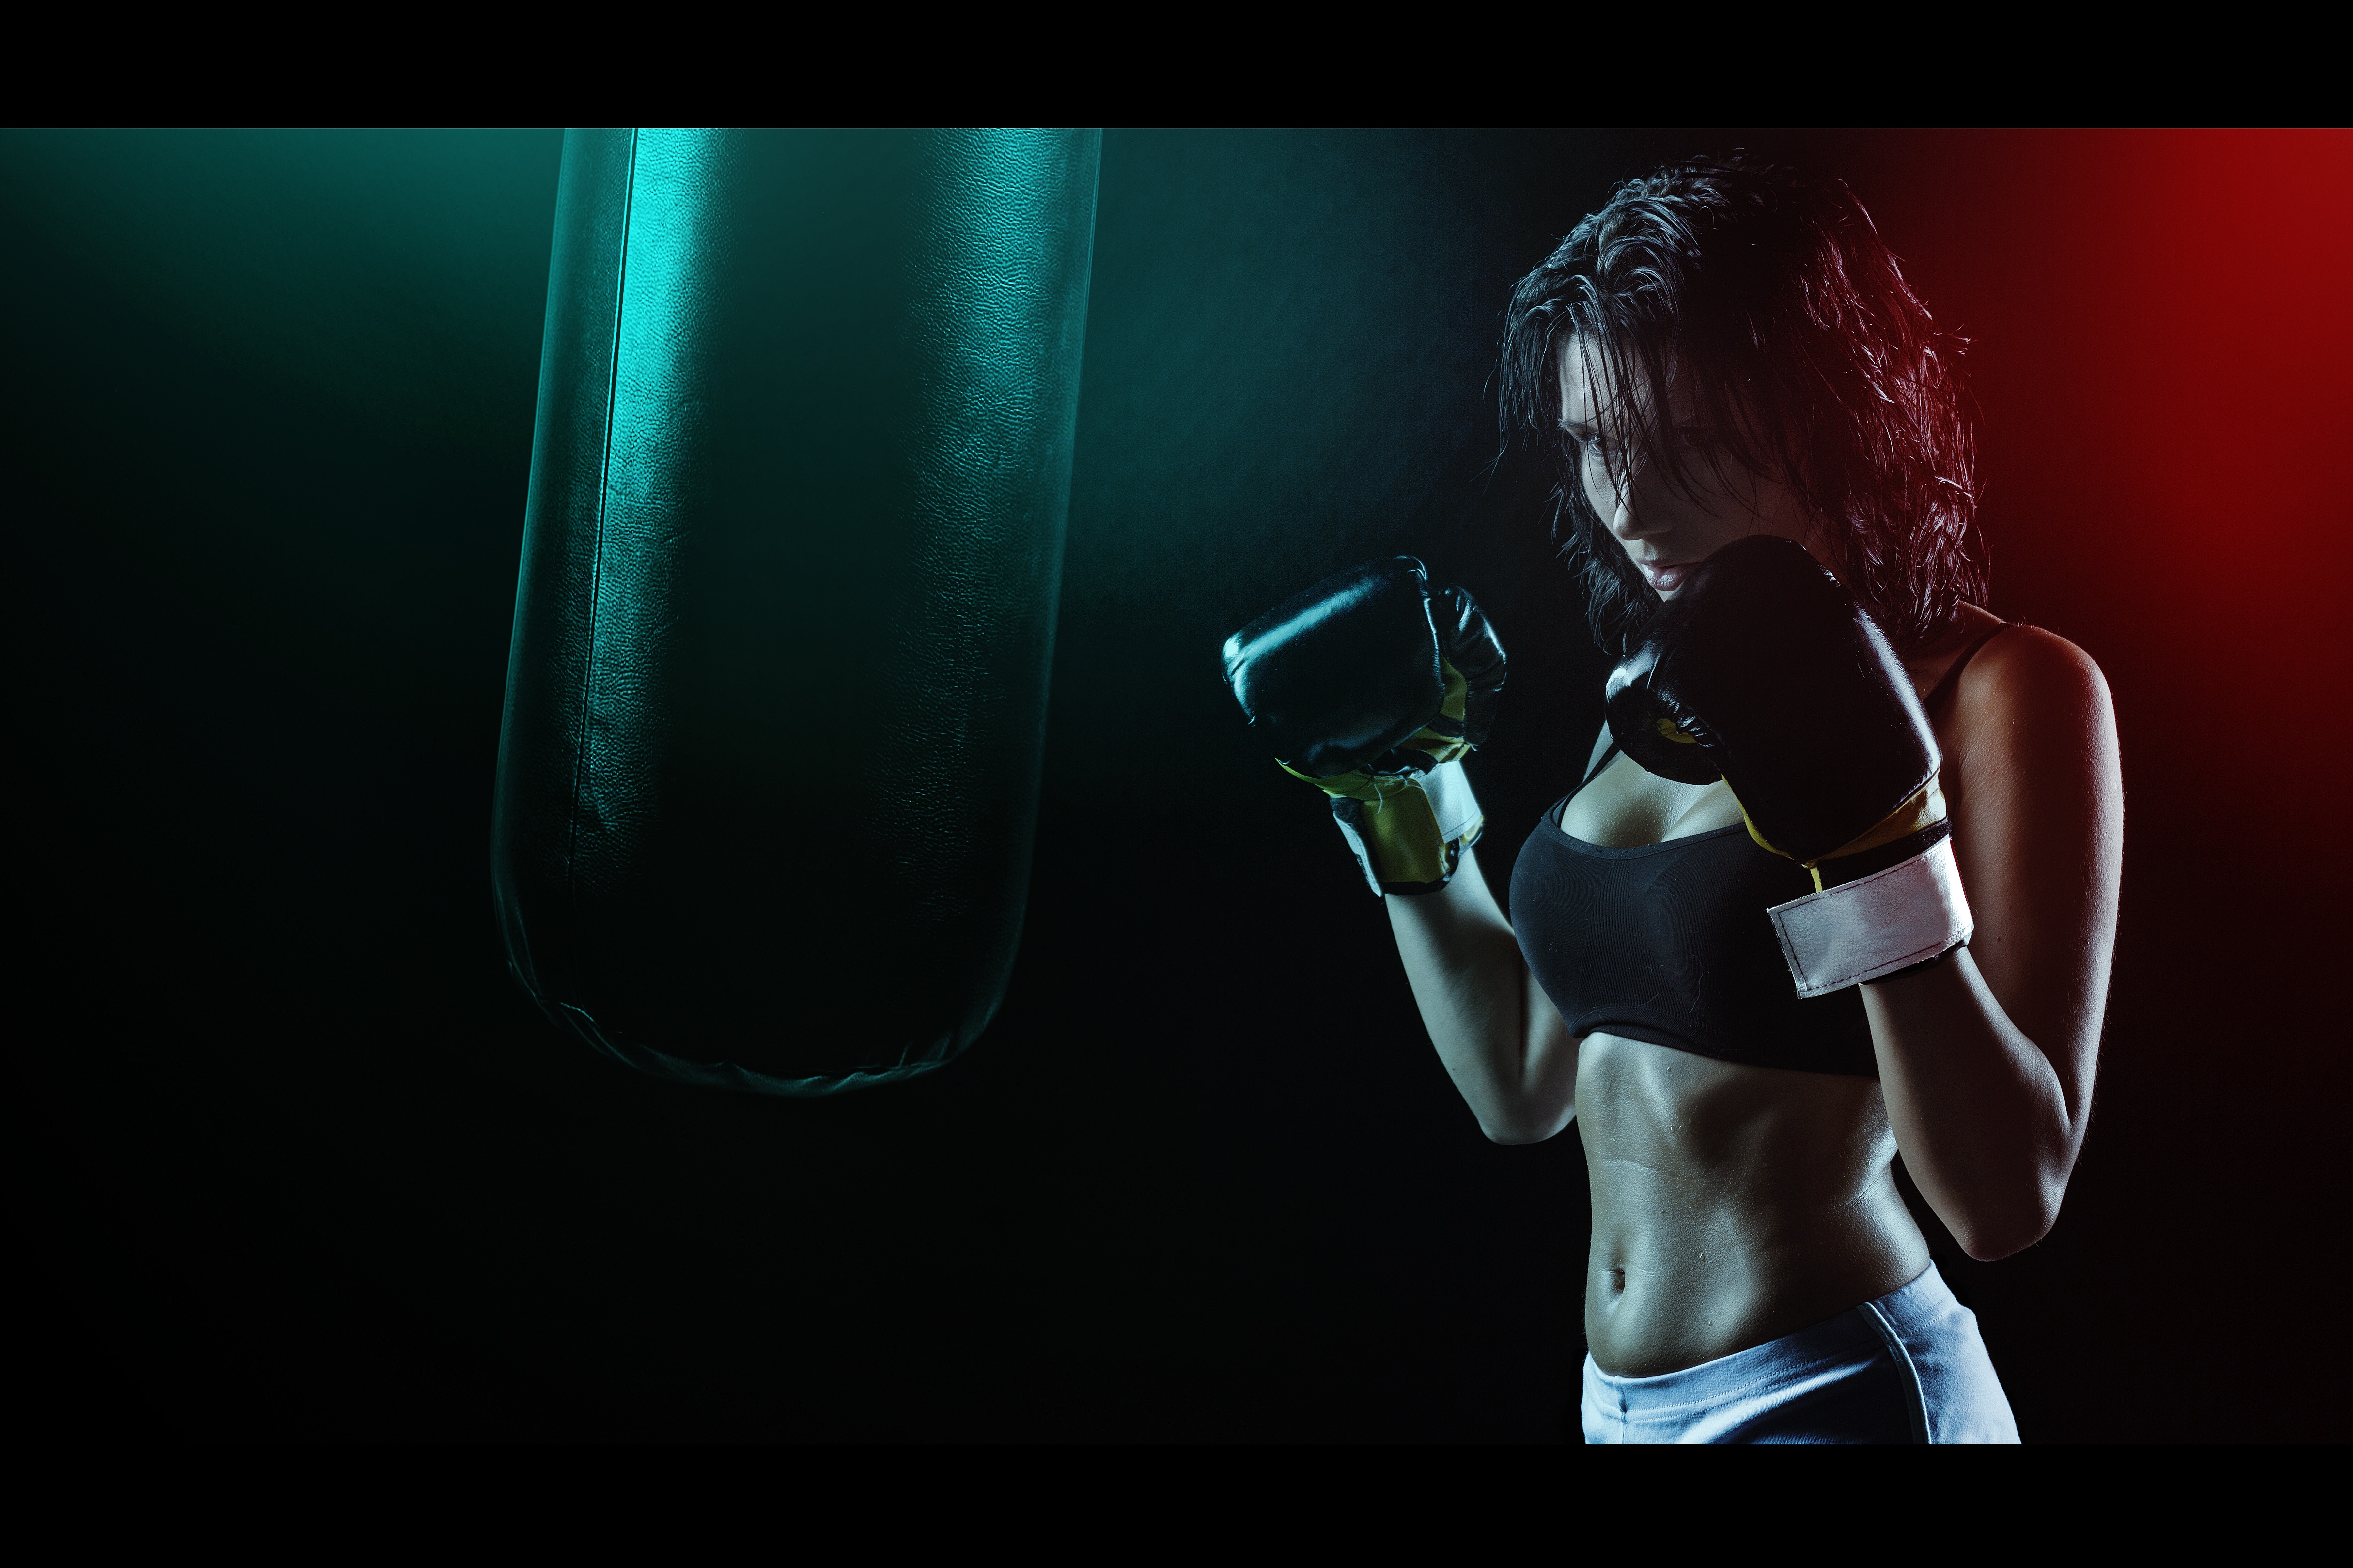 Woman in boxing gloves with sports bra posing boxing style in front of punching bag photo